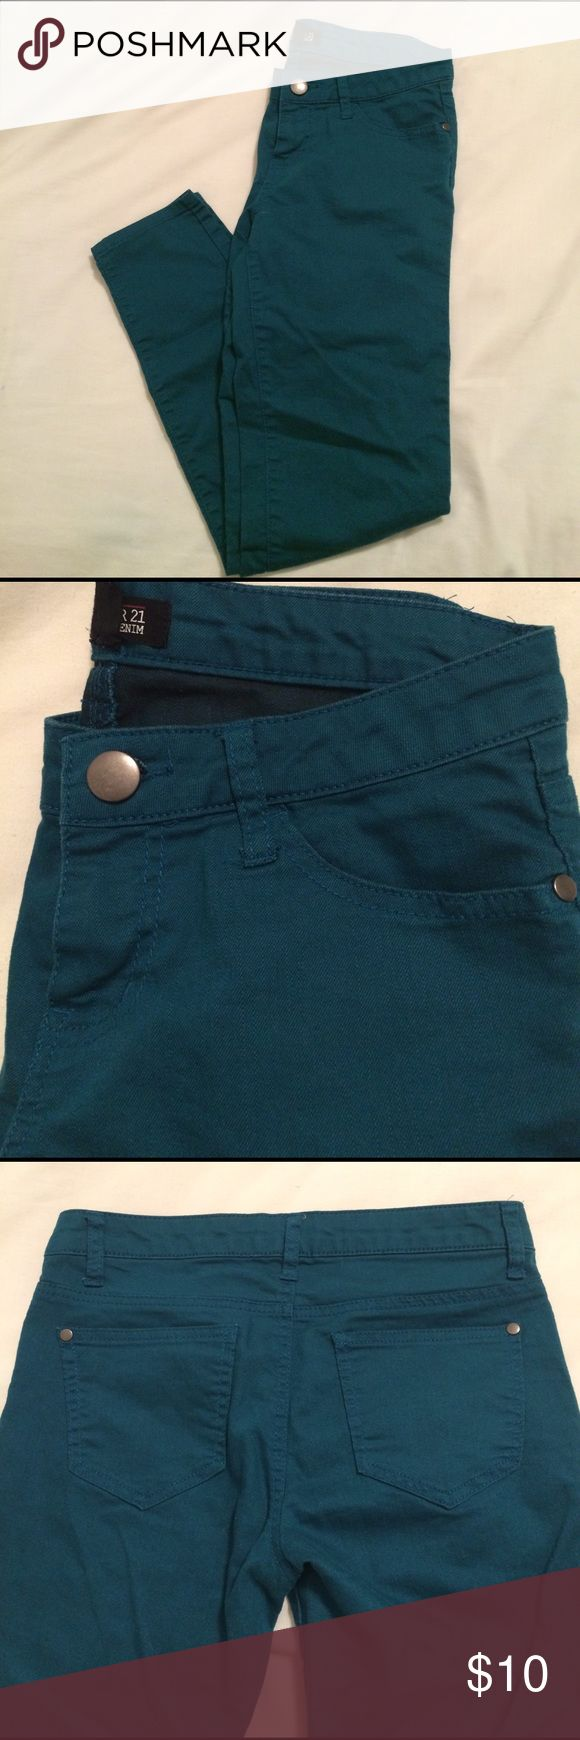 EUC! Forever 21 turquoise jeans, 26. EUC! Forever 21 turquoise/marine blue skinny jean. Have a lot of stretch, nice and light for summer! Size, 26. Forever 21 Jeans Skinny